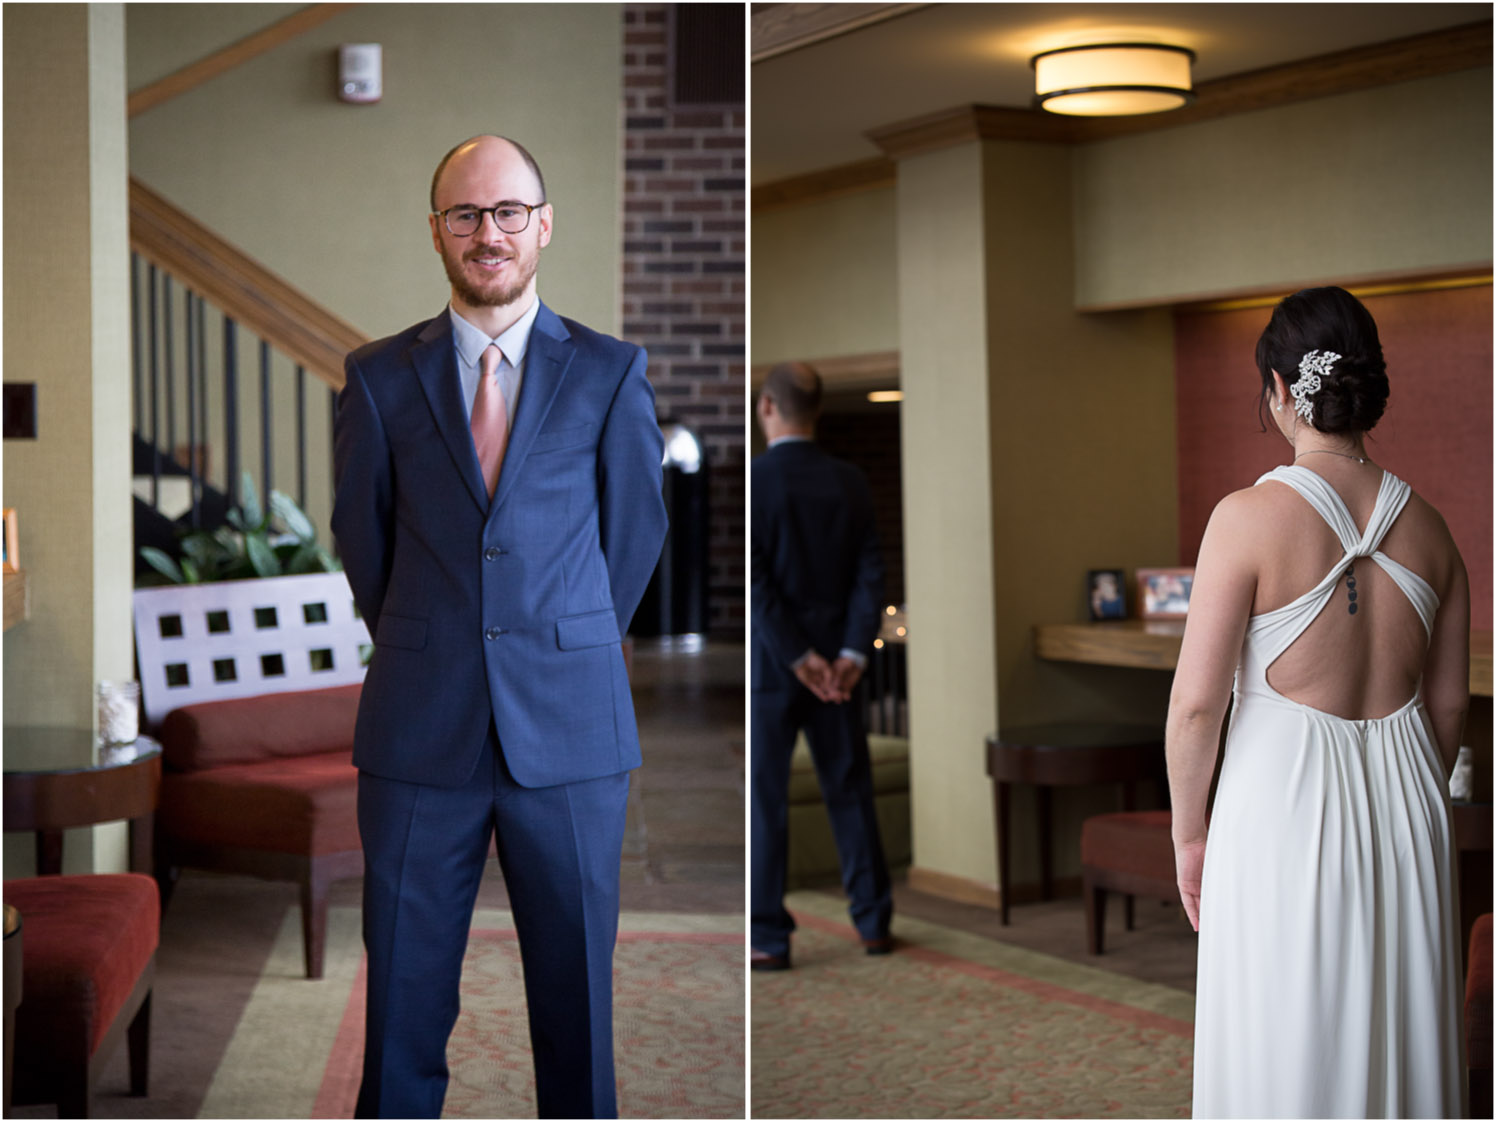 08-loring-green-weddig-day-bride-and-groom-first-look-mahonen-photography.jpg